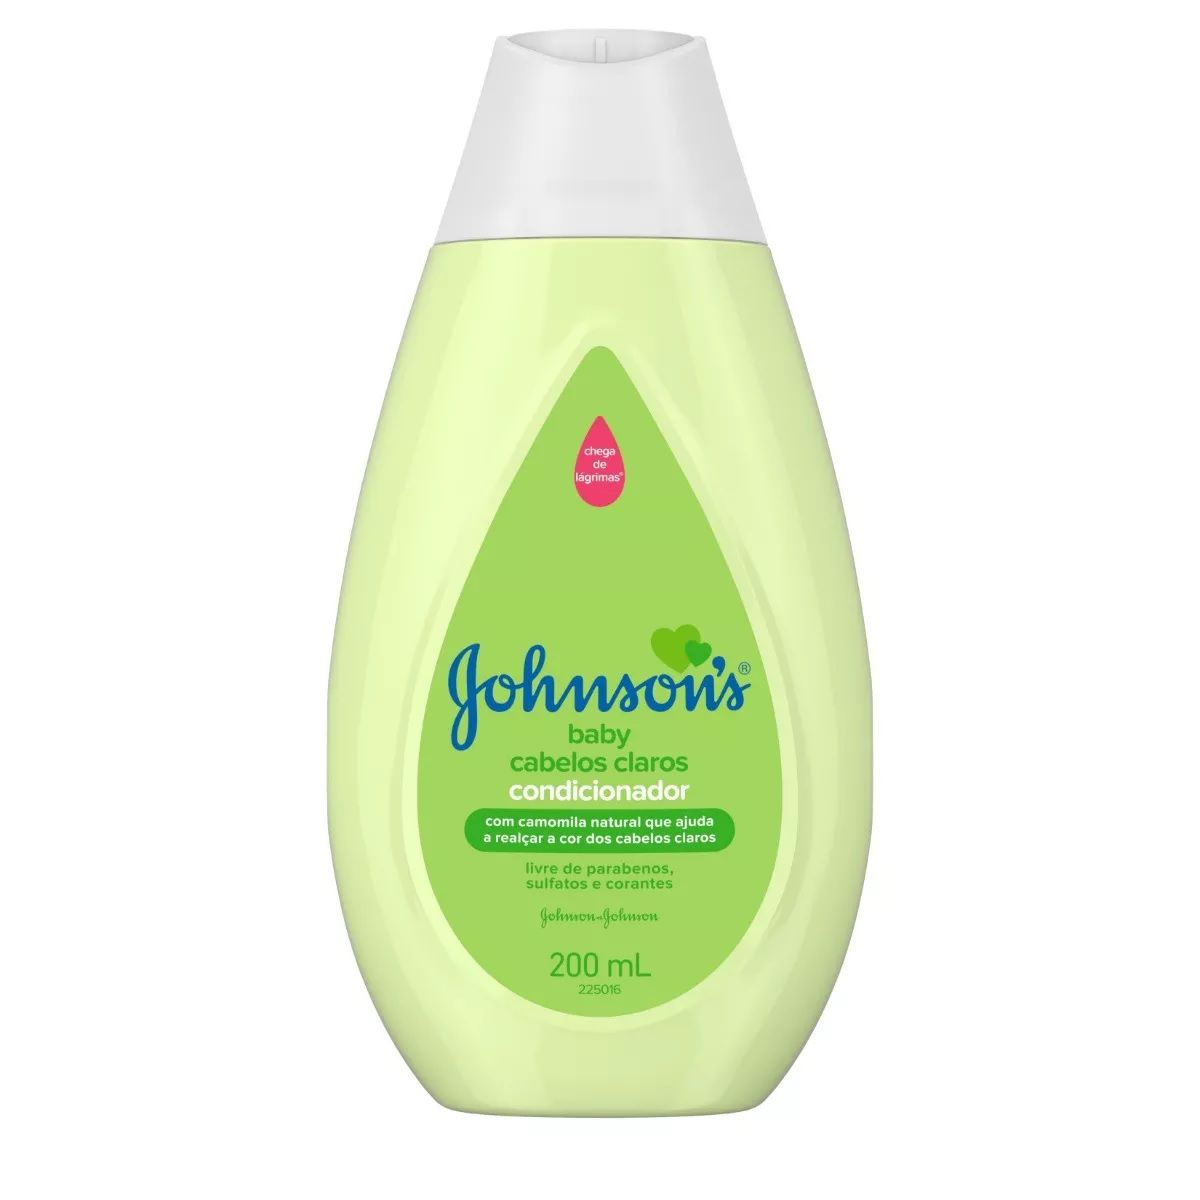 CONDICIONADOR JOHNSONS CABELOS CLAROS 200 ML  - Ruth Fraldas